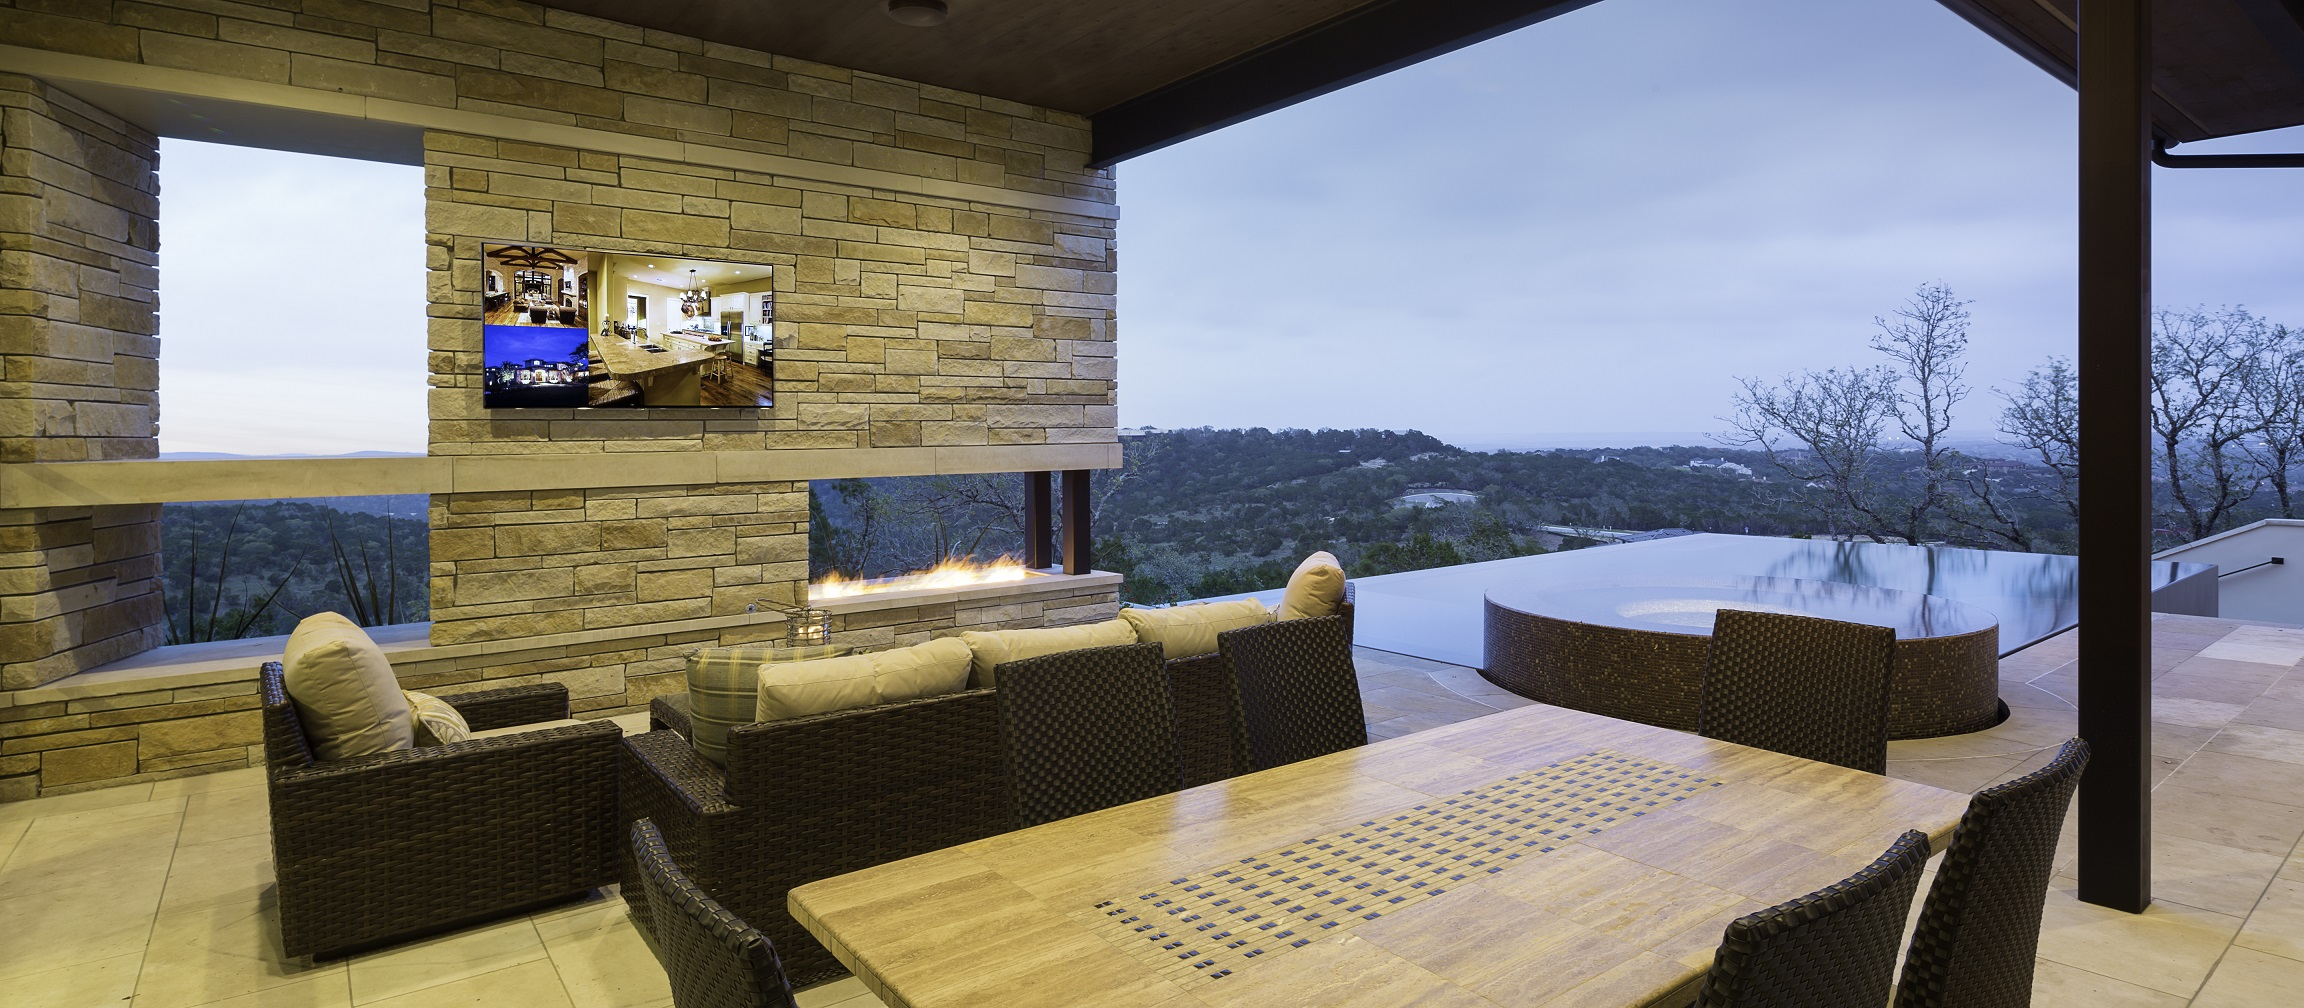 Duckhorn Residence - living room pool view